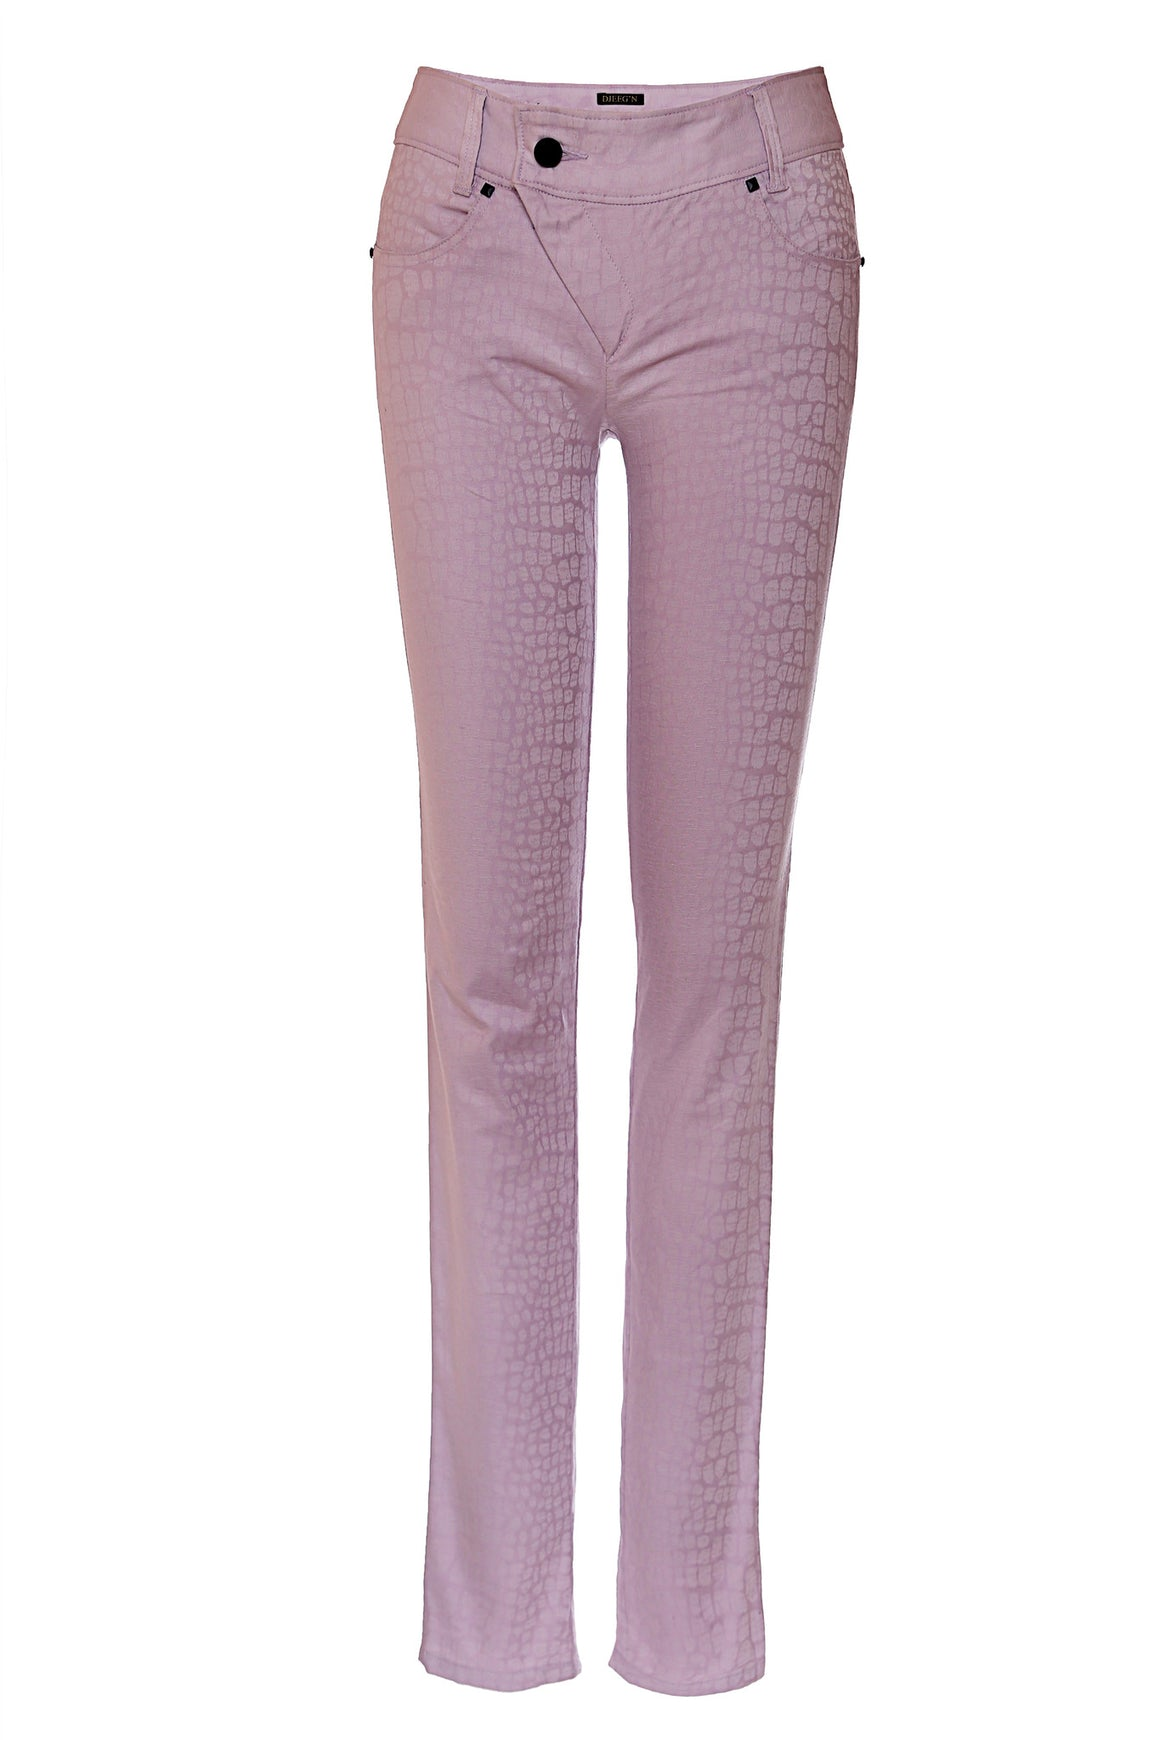 purple lavender asymmetrical zipper pants